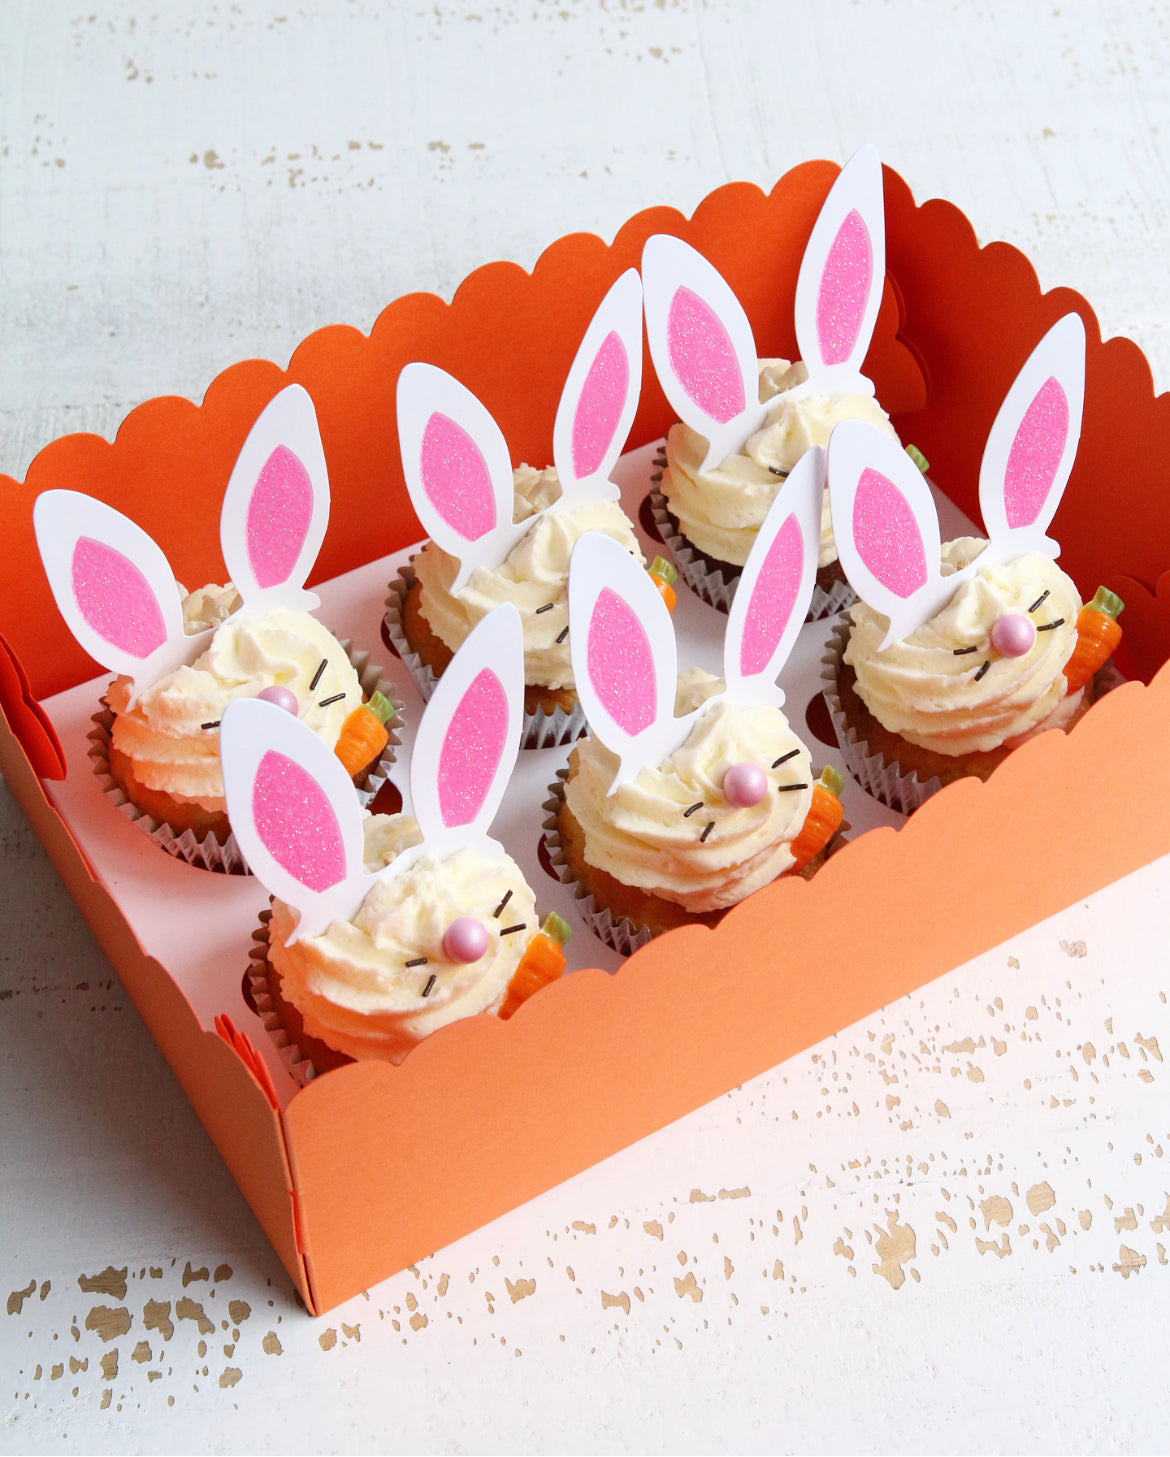 Easter Bunny Cupcakes in Box